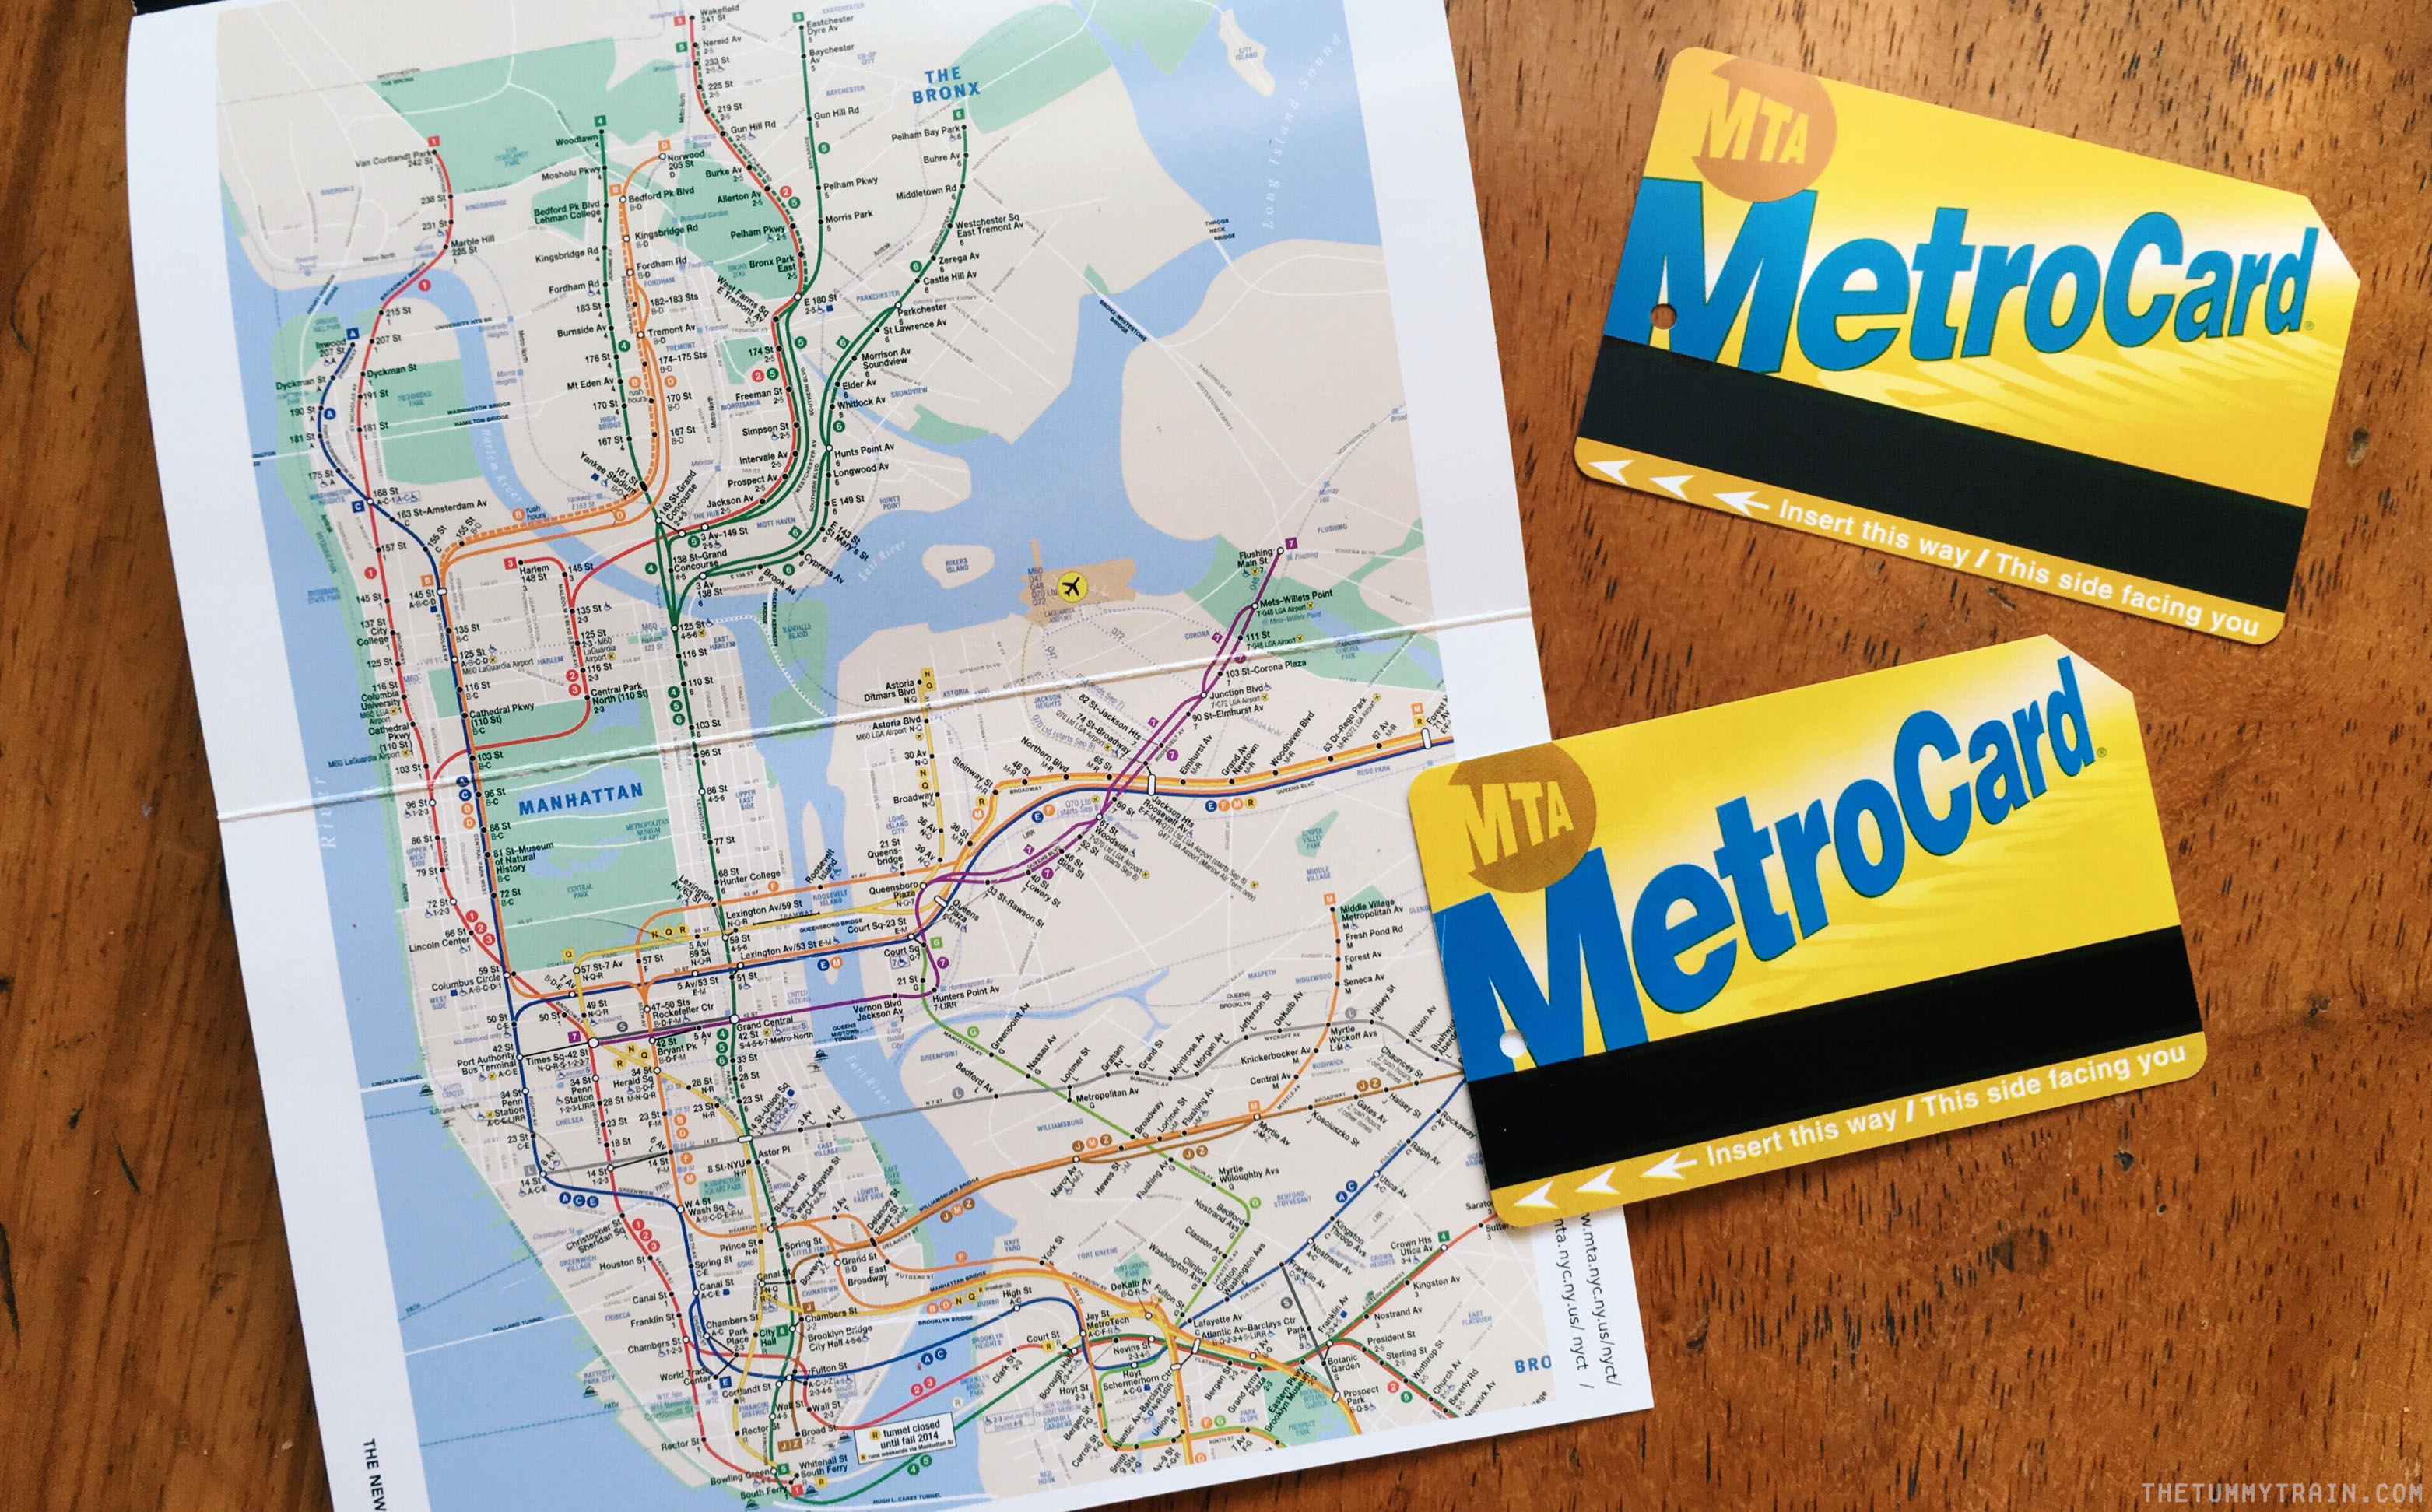 NY Guide Metro Card - 12 Tips for your first time in New York City